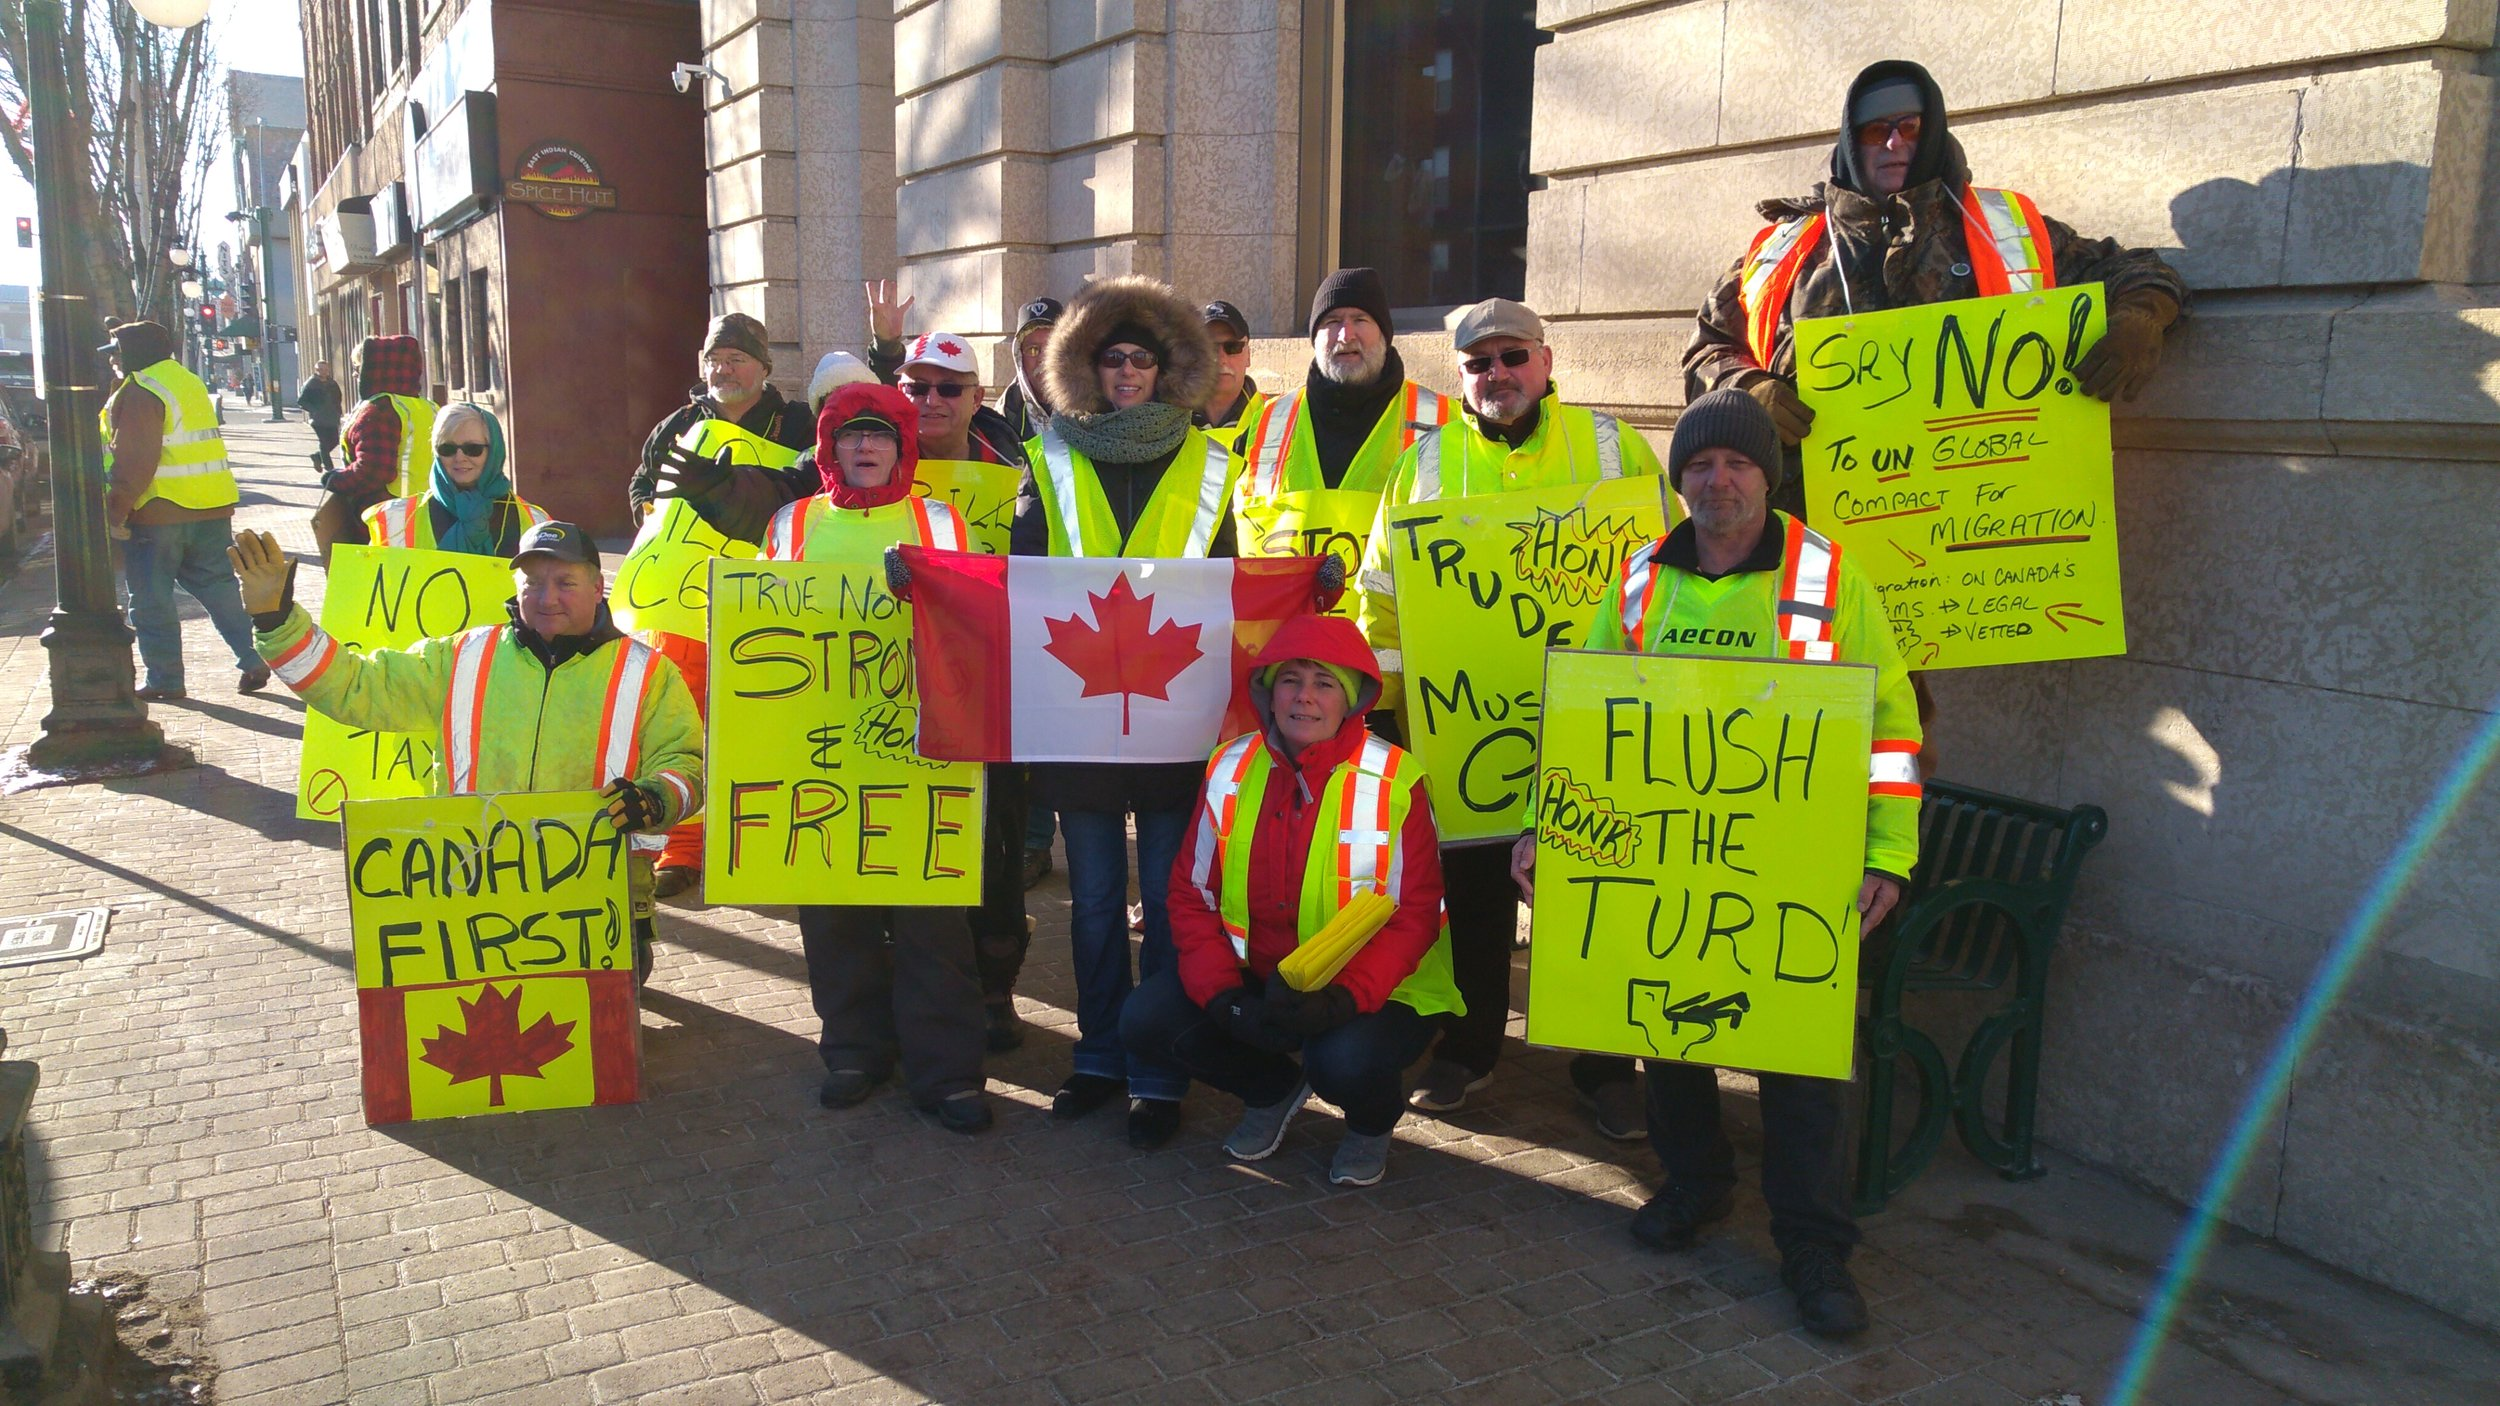 Group photo of some of the protesters today in front of City hall.